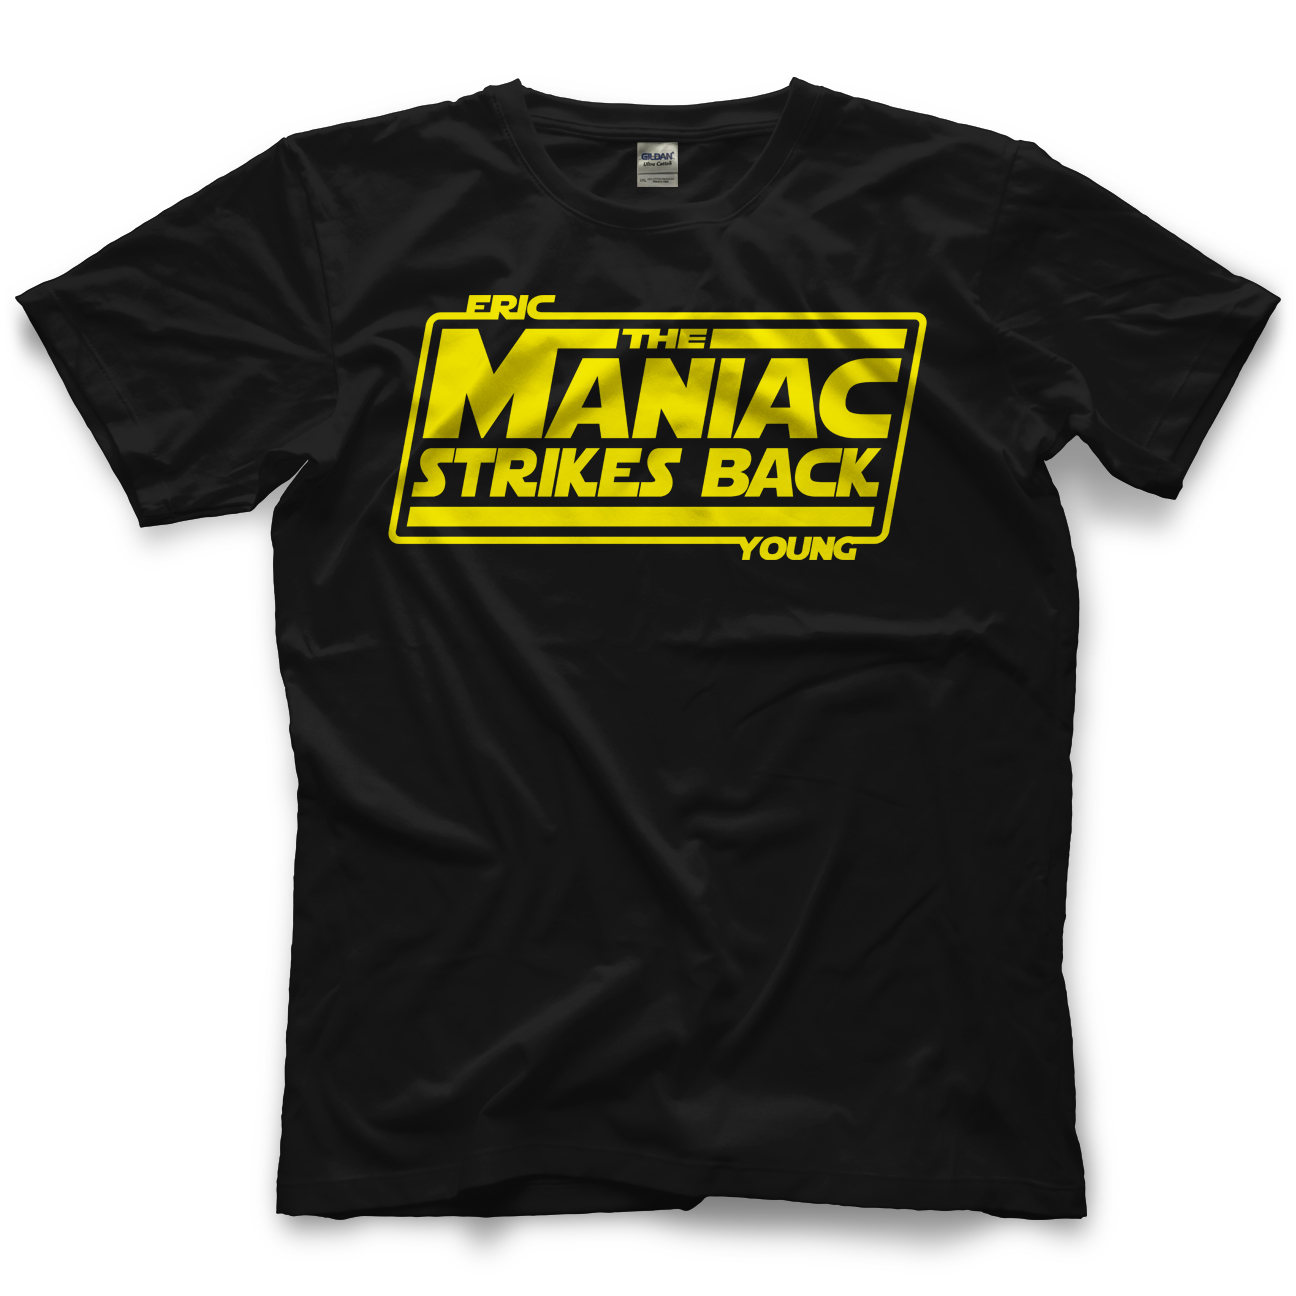 The Maniac Strikes Back T-shirt